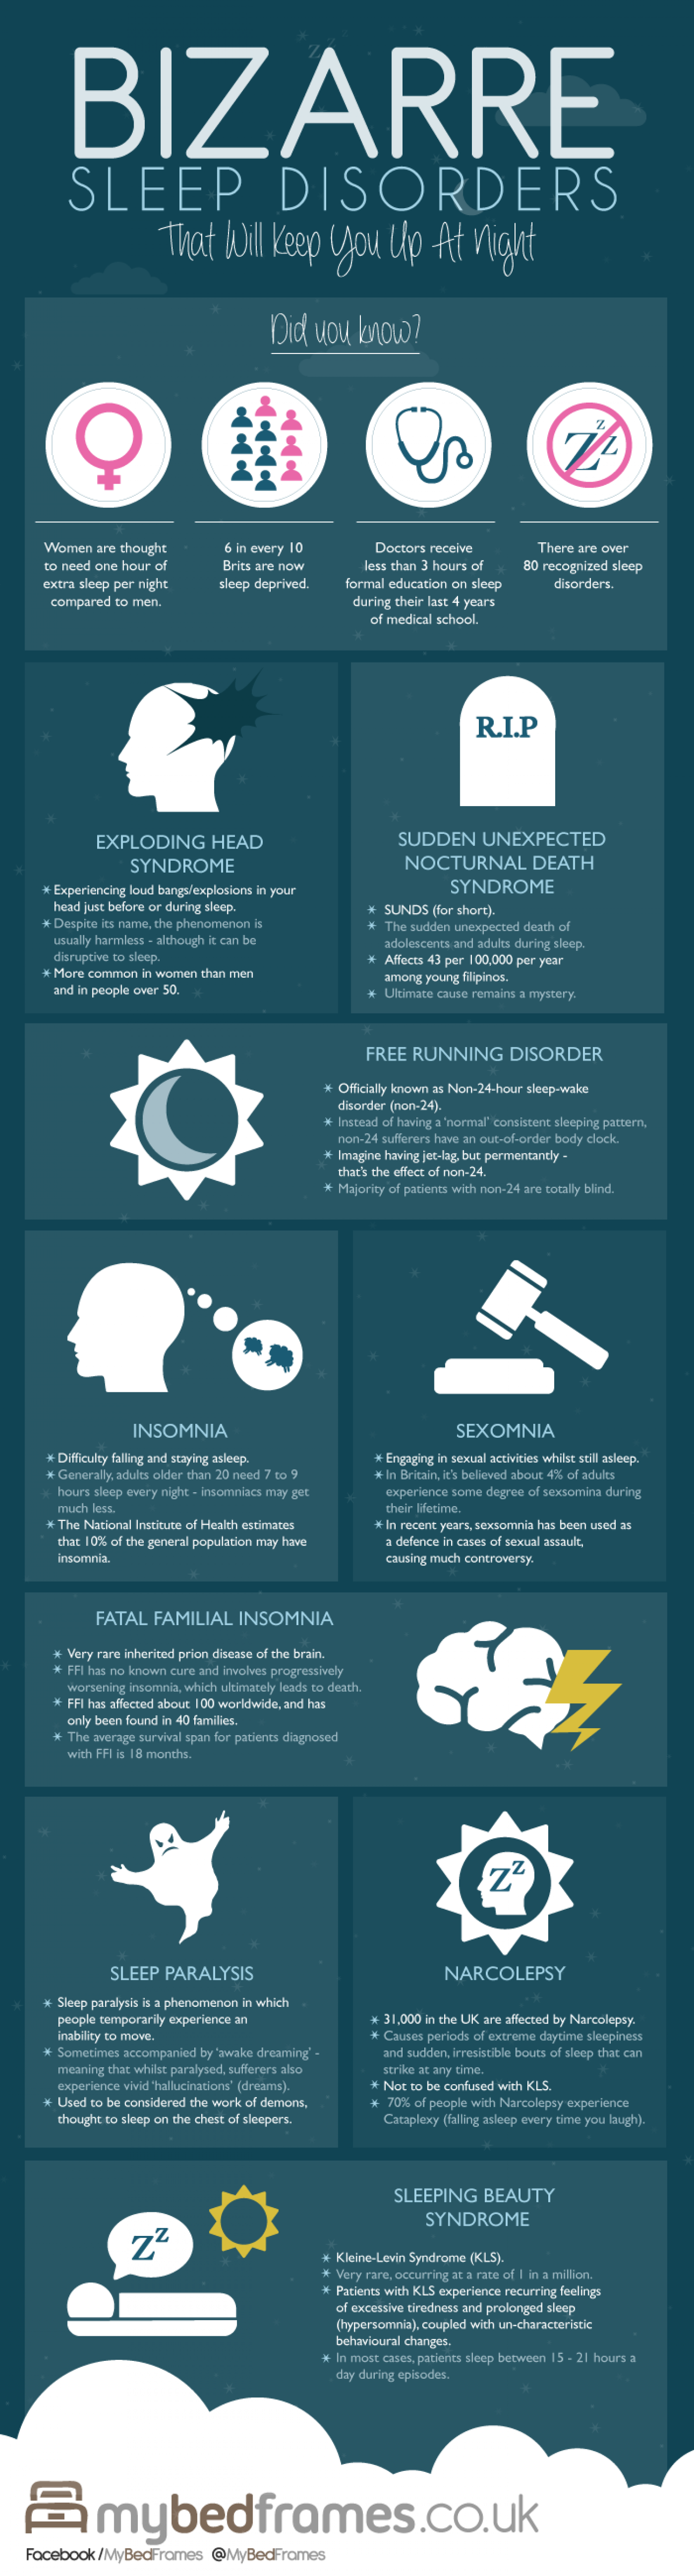 Bizarre Sleep Disorders (That Will Keep You Up at Night) Infographic